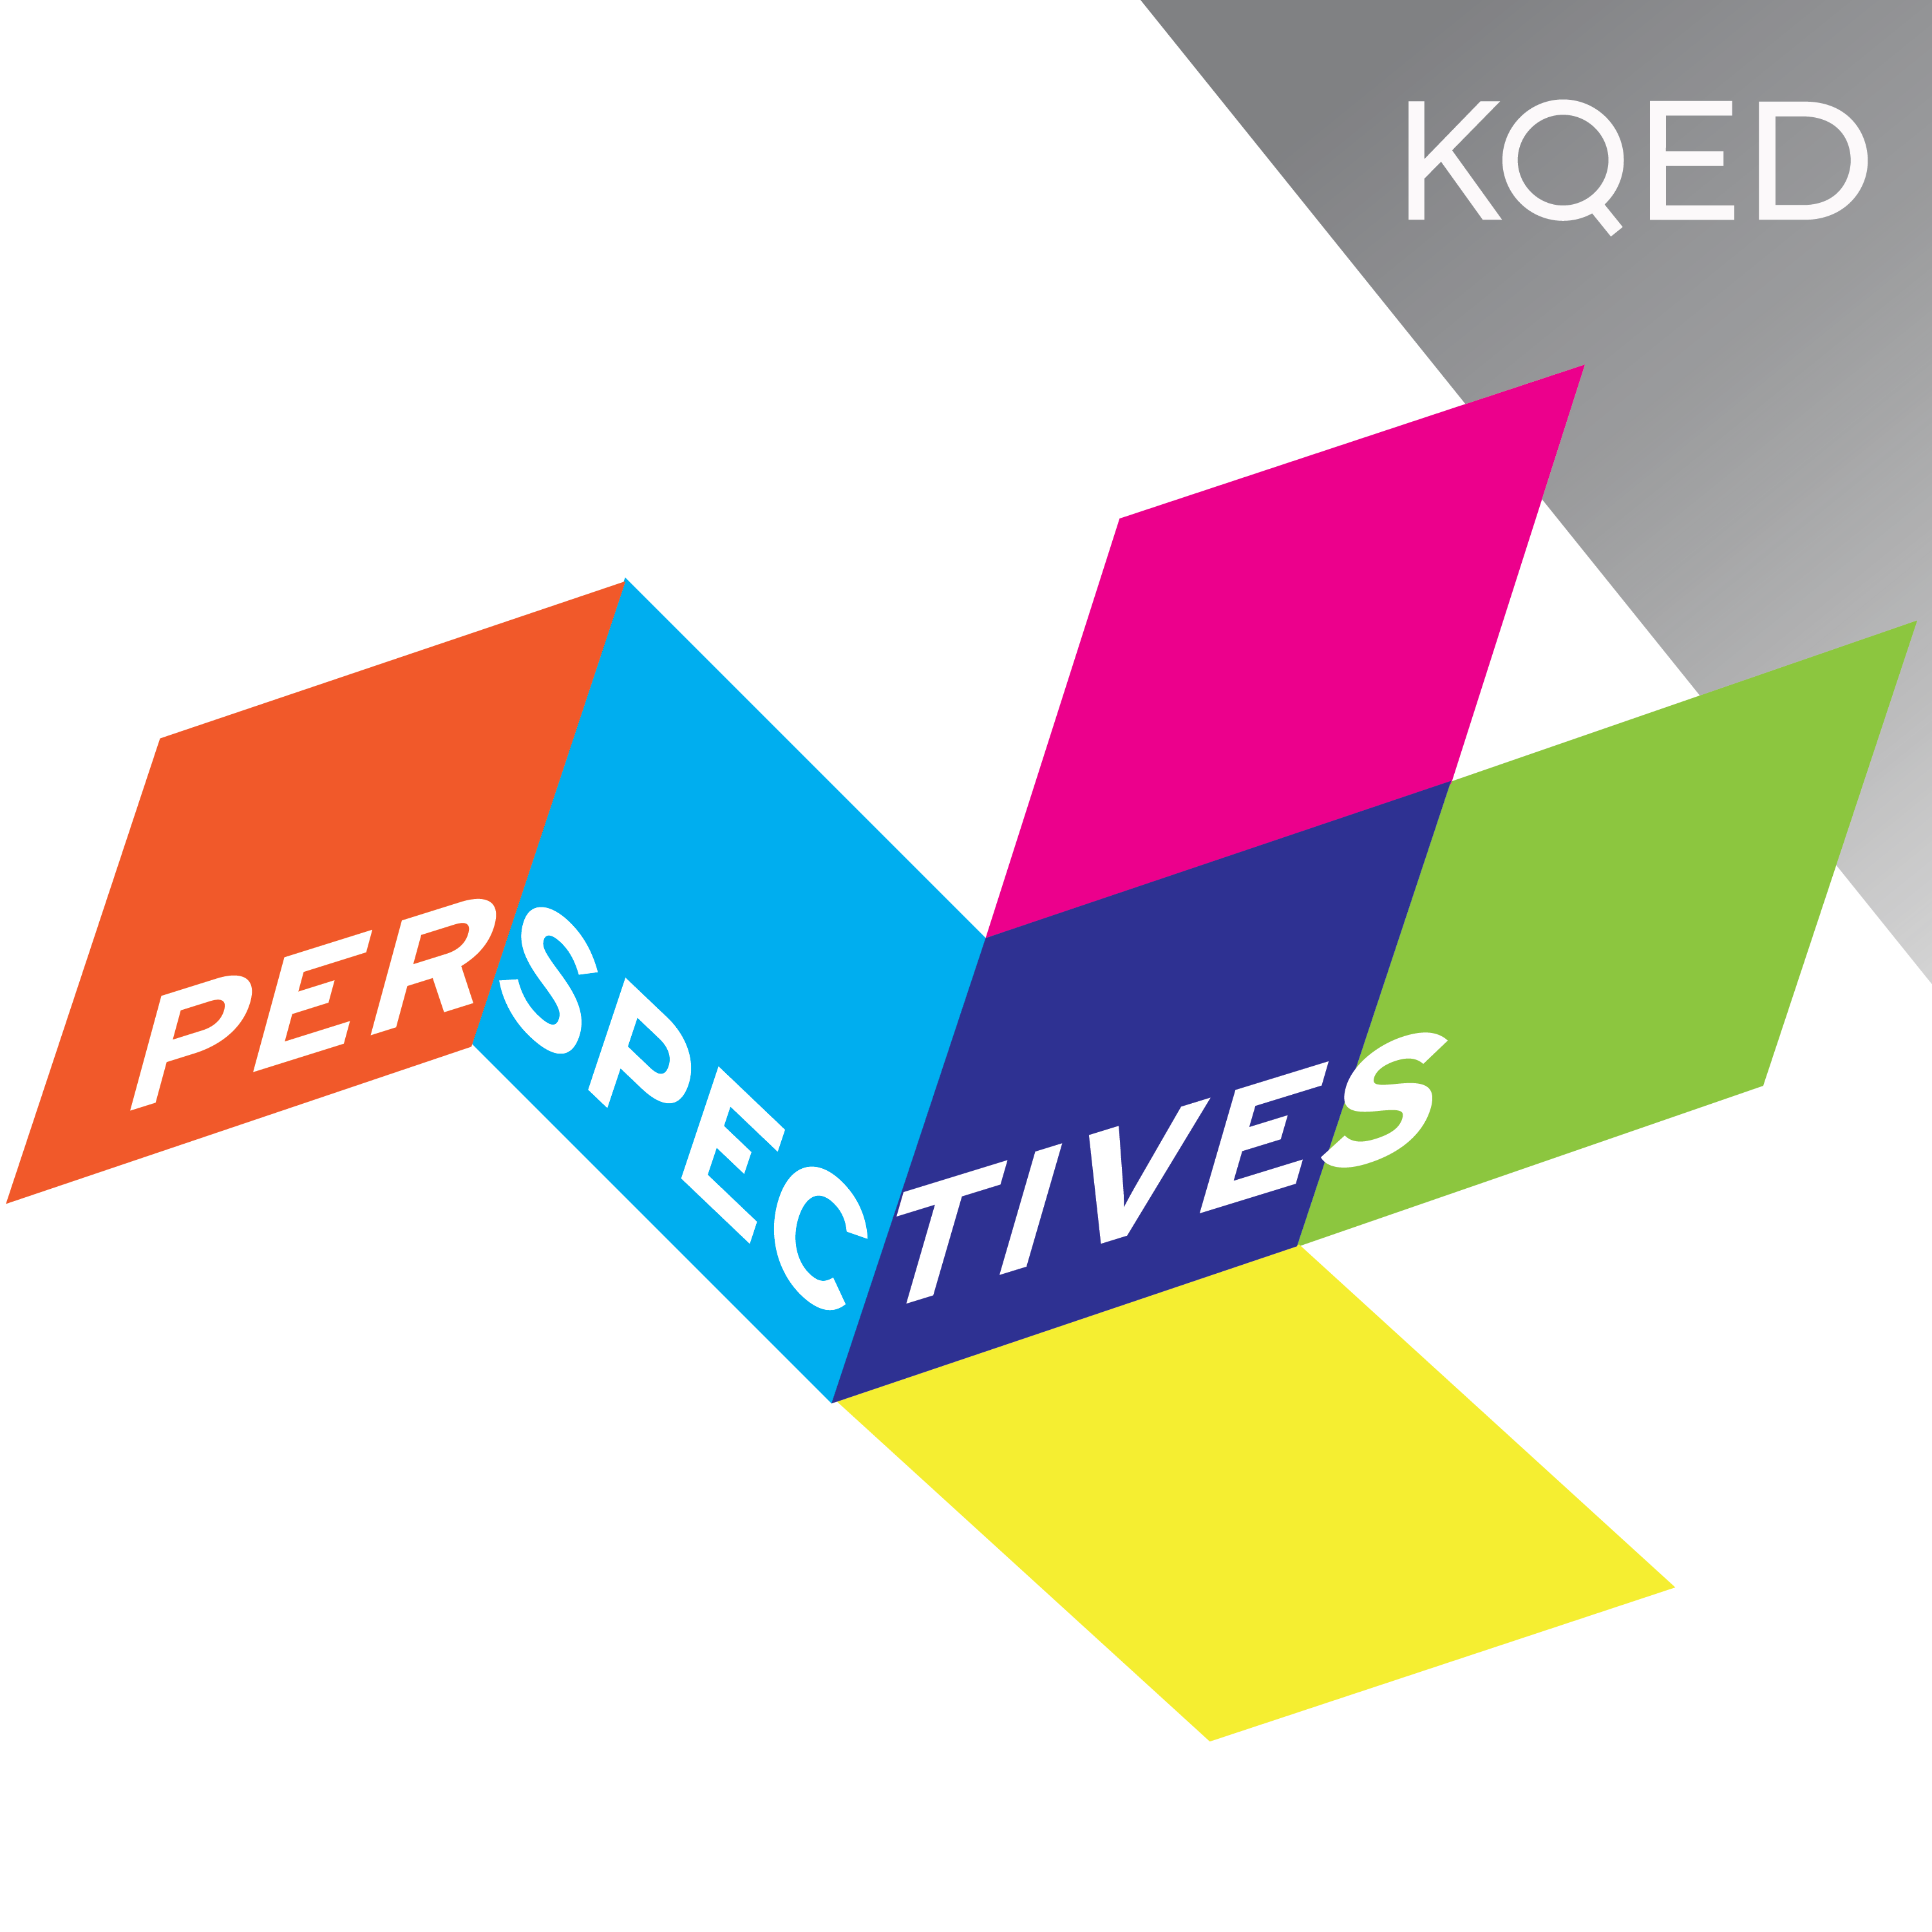 KQED's Perspectives